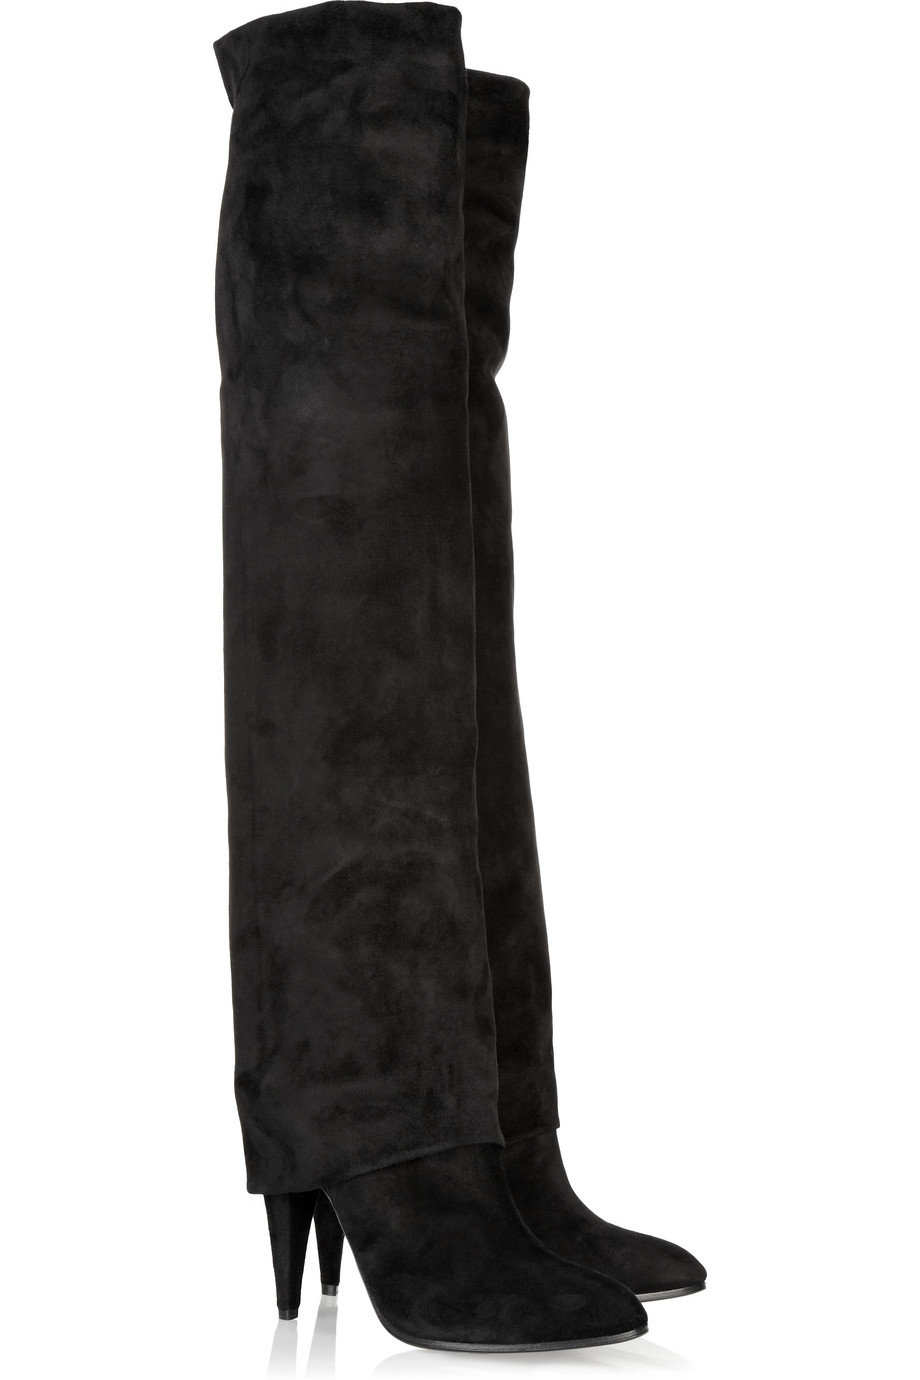 sigerson morrison fold thigh high suede boots in